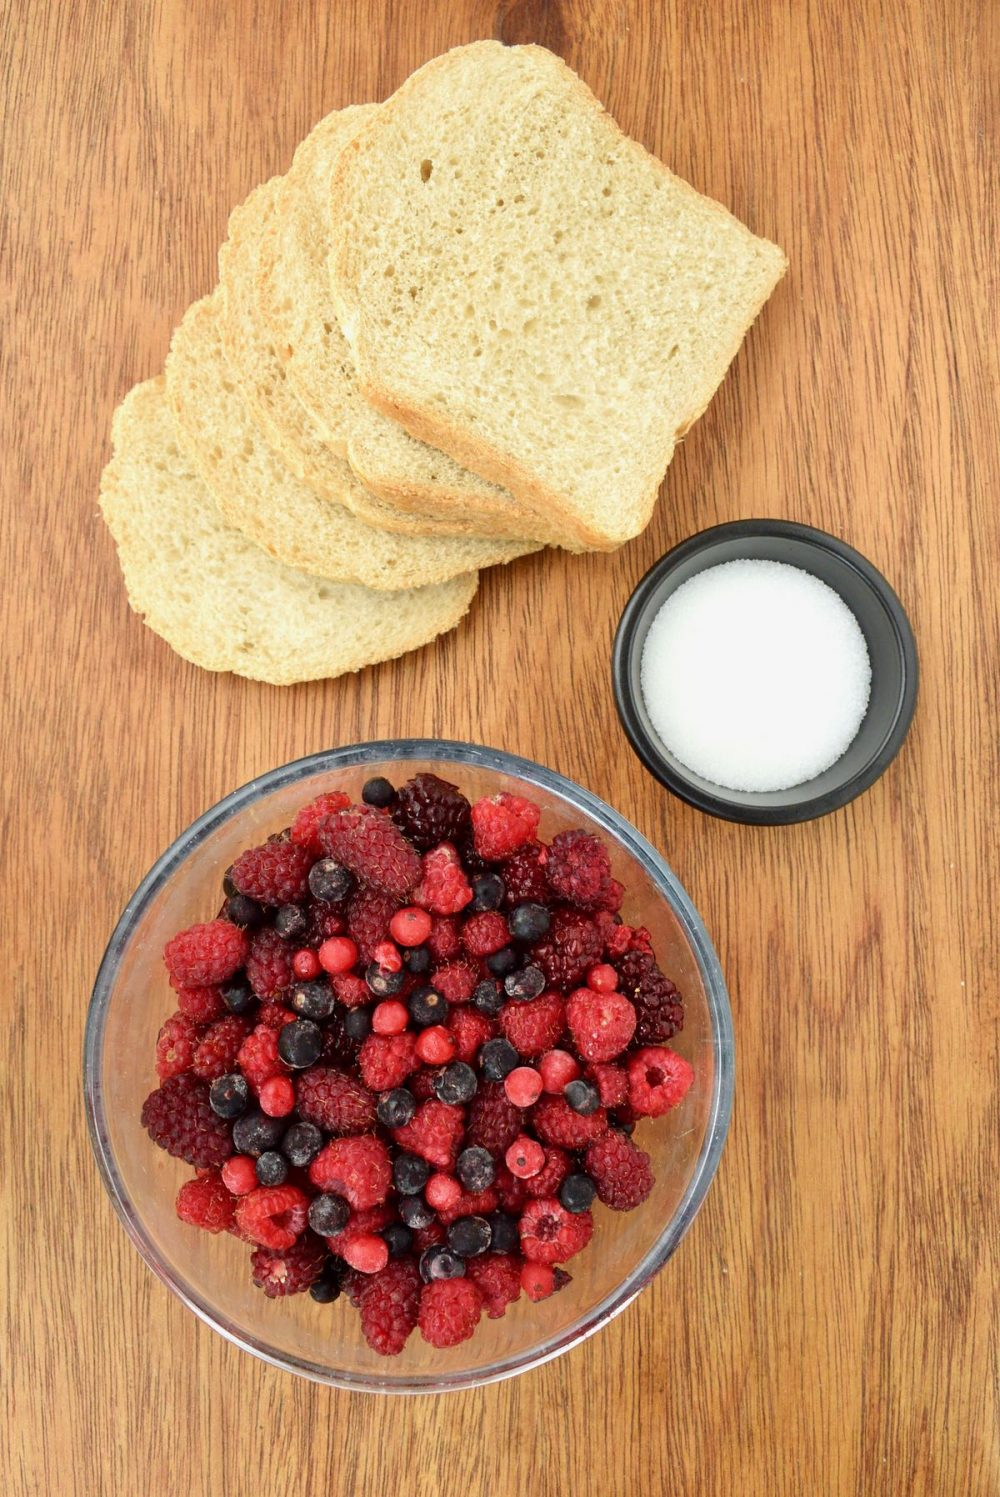 The ingredients for the summer pudding laid out on the table: slices of white bread, a small bowl of sugar and a big glass bowl filled with a variation of red berries.